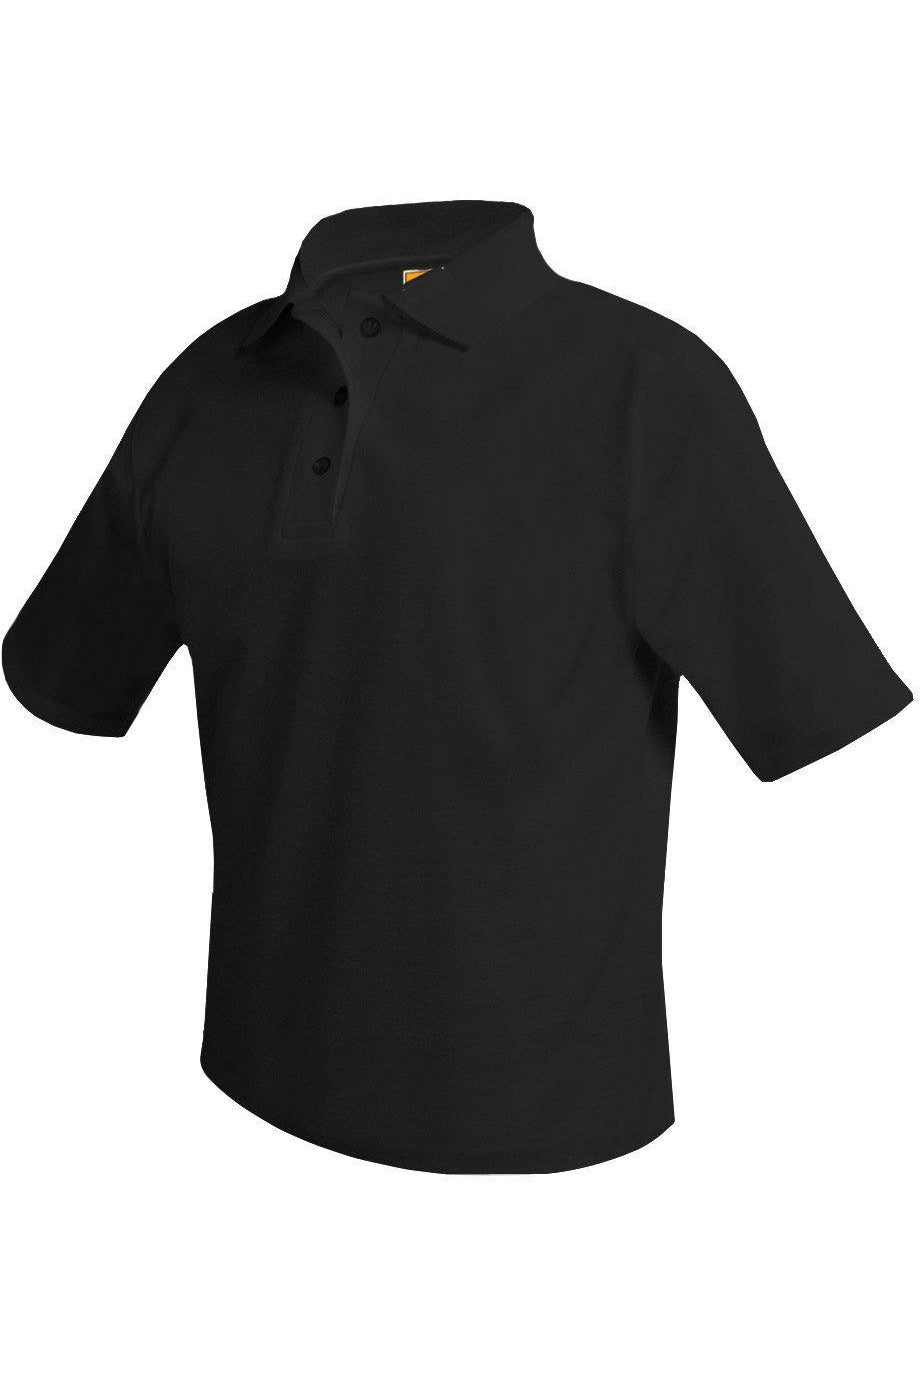 Short Sleeve Polo Shirt - RC Uniforms